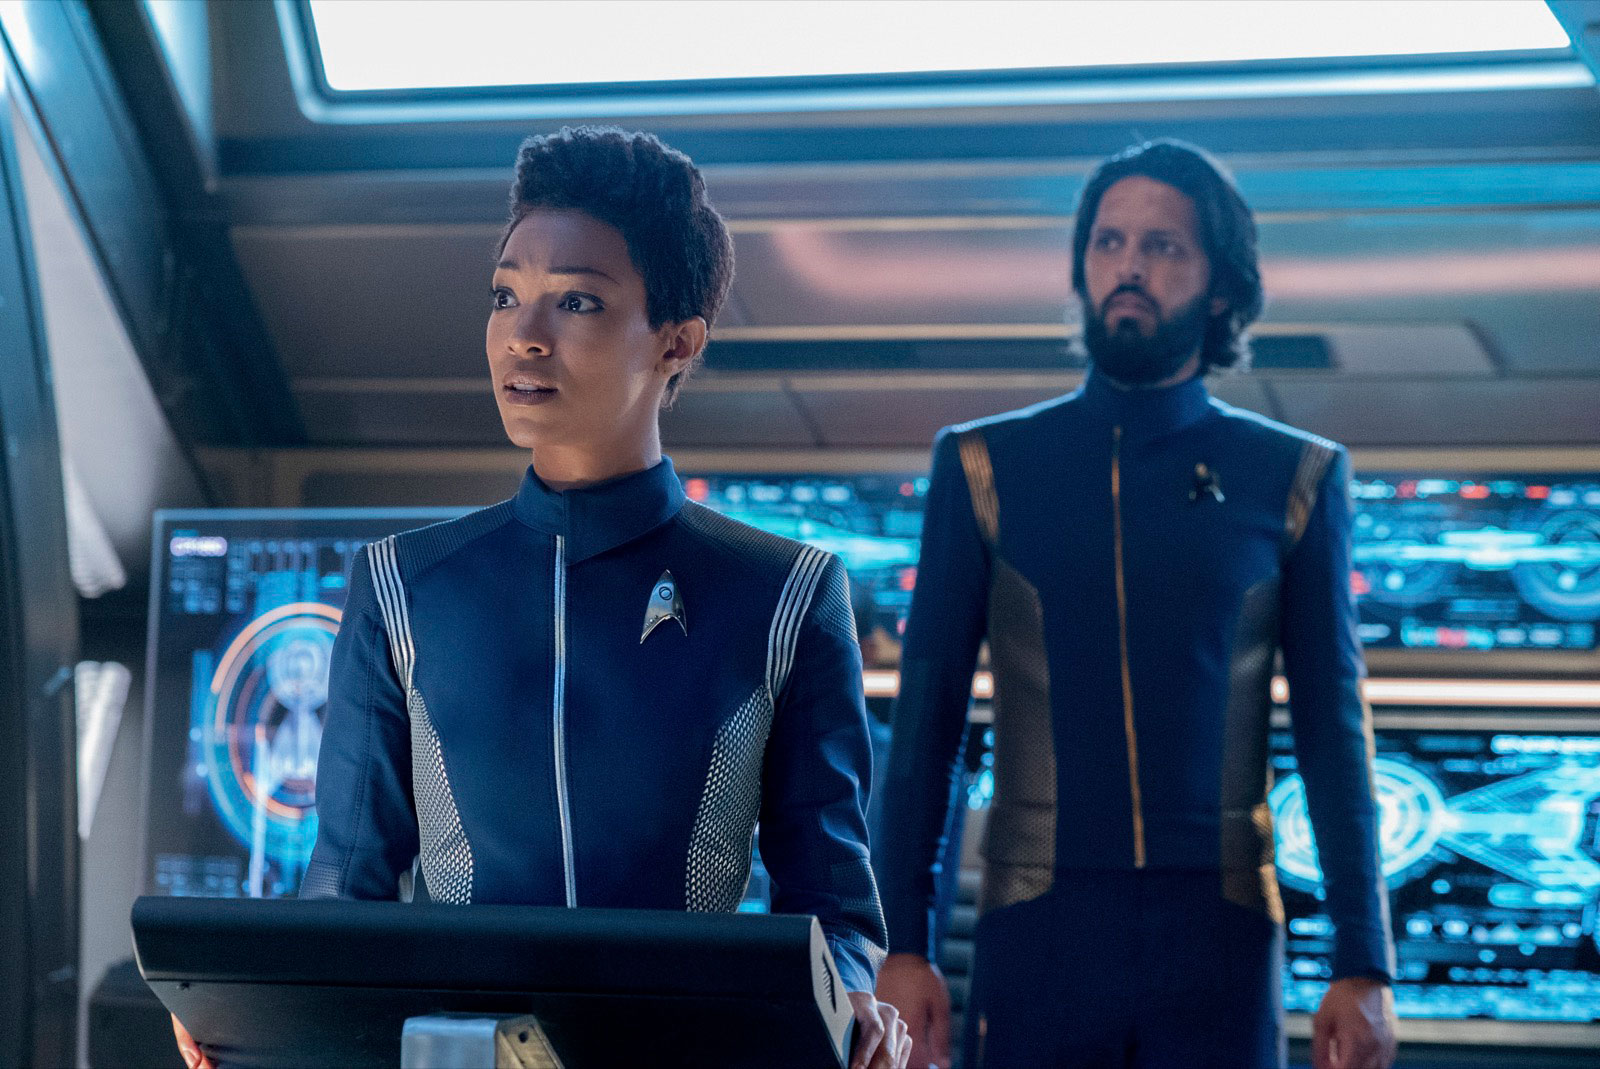 Sonequa Martin-Green as Michael Burnham and Shazad Latif as Ash Tyler